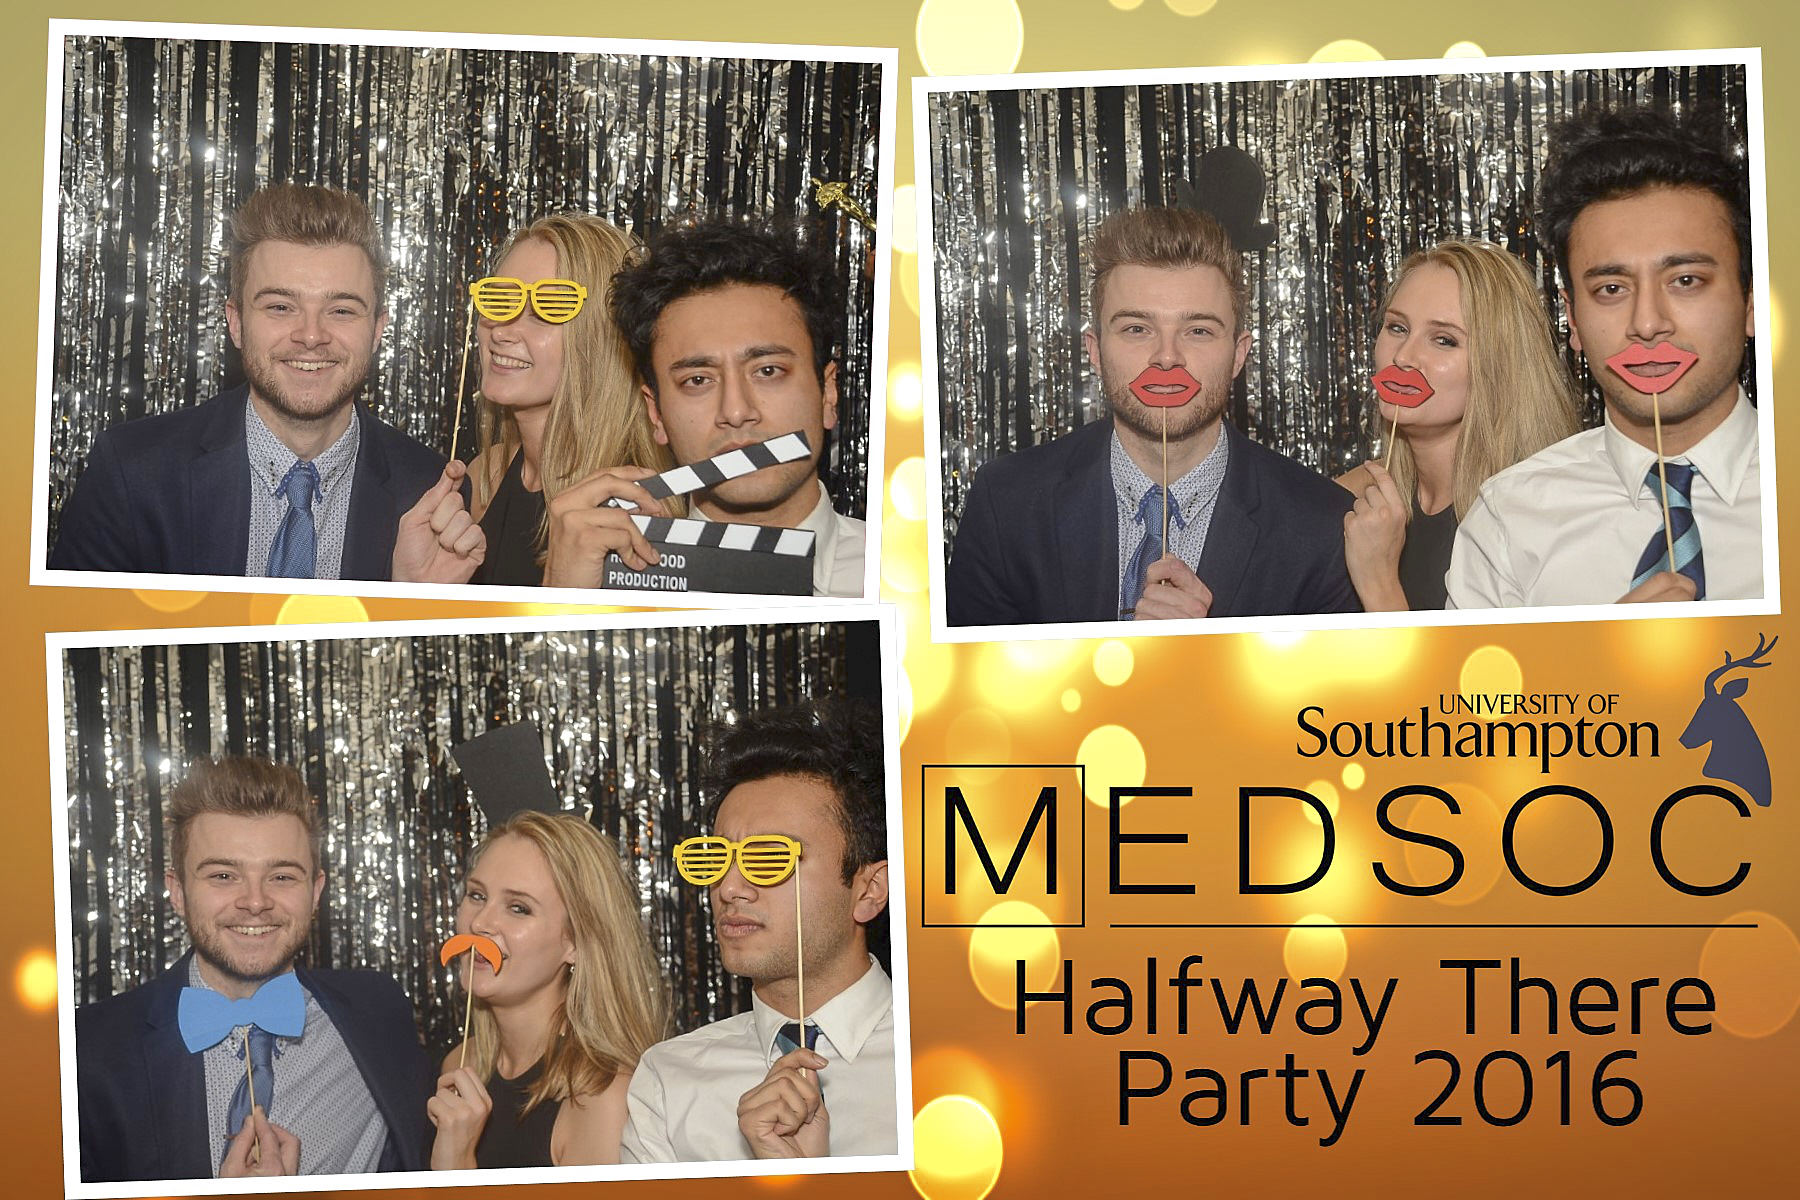 MedSoc Halfway There Party 2016 DS235952.jpg